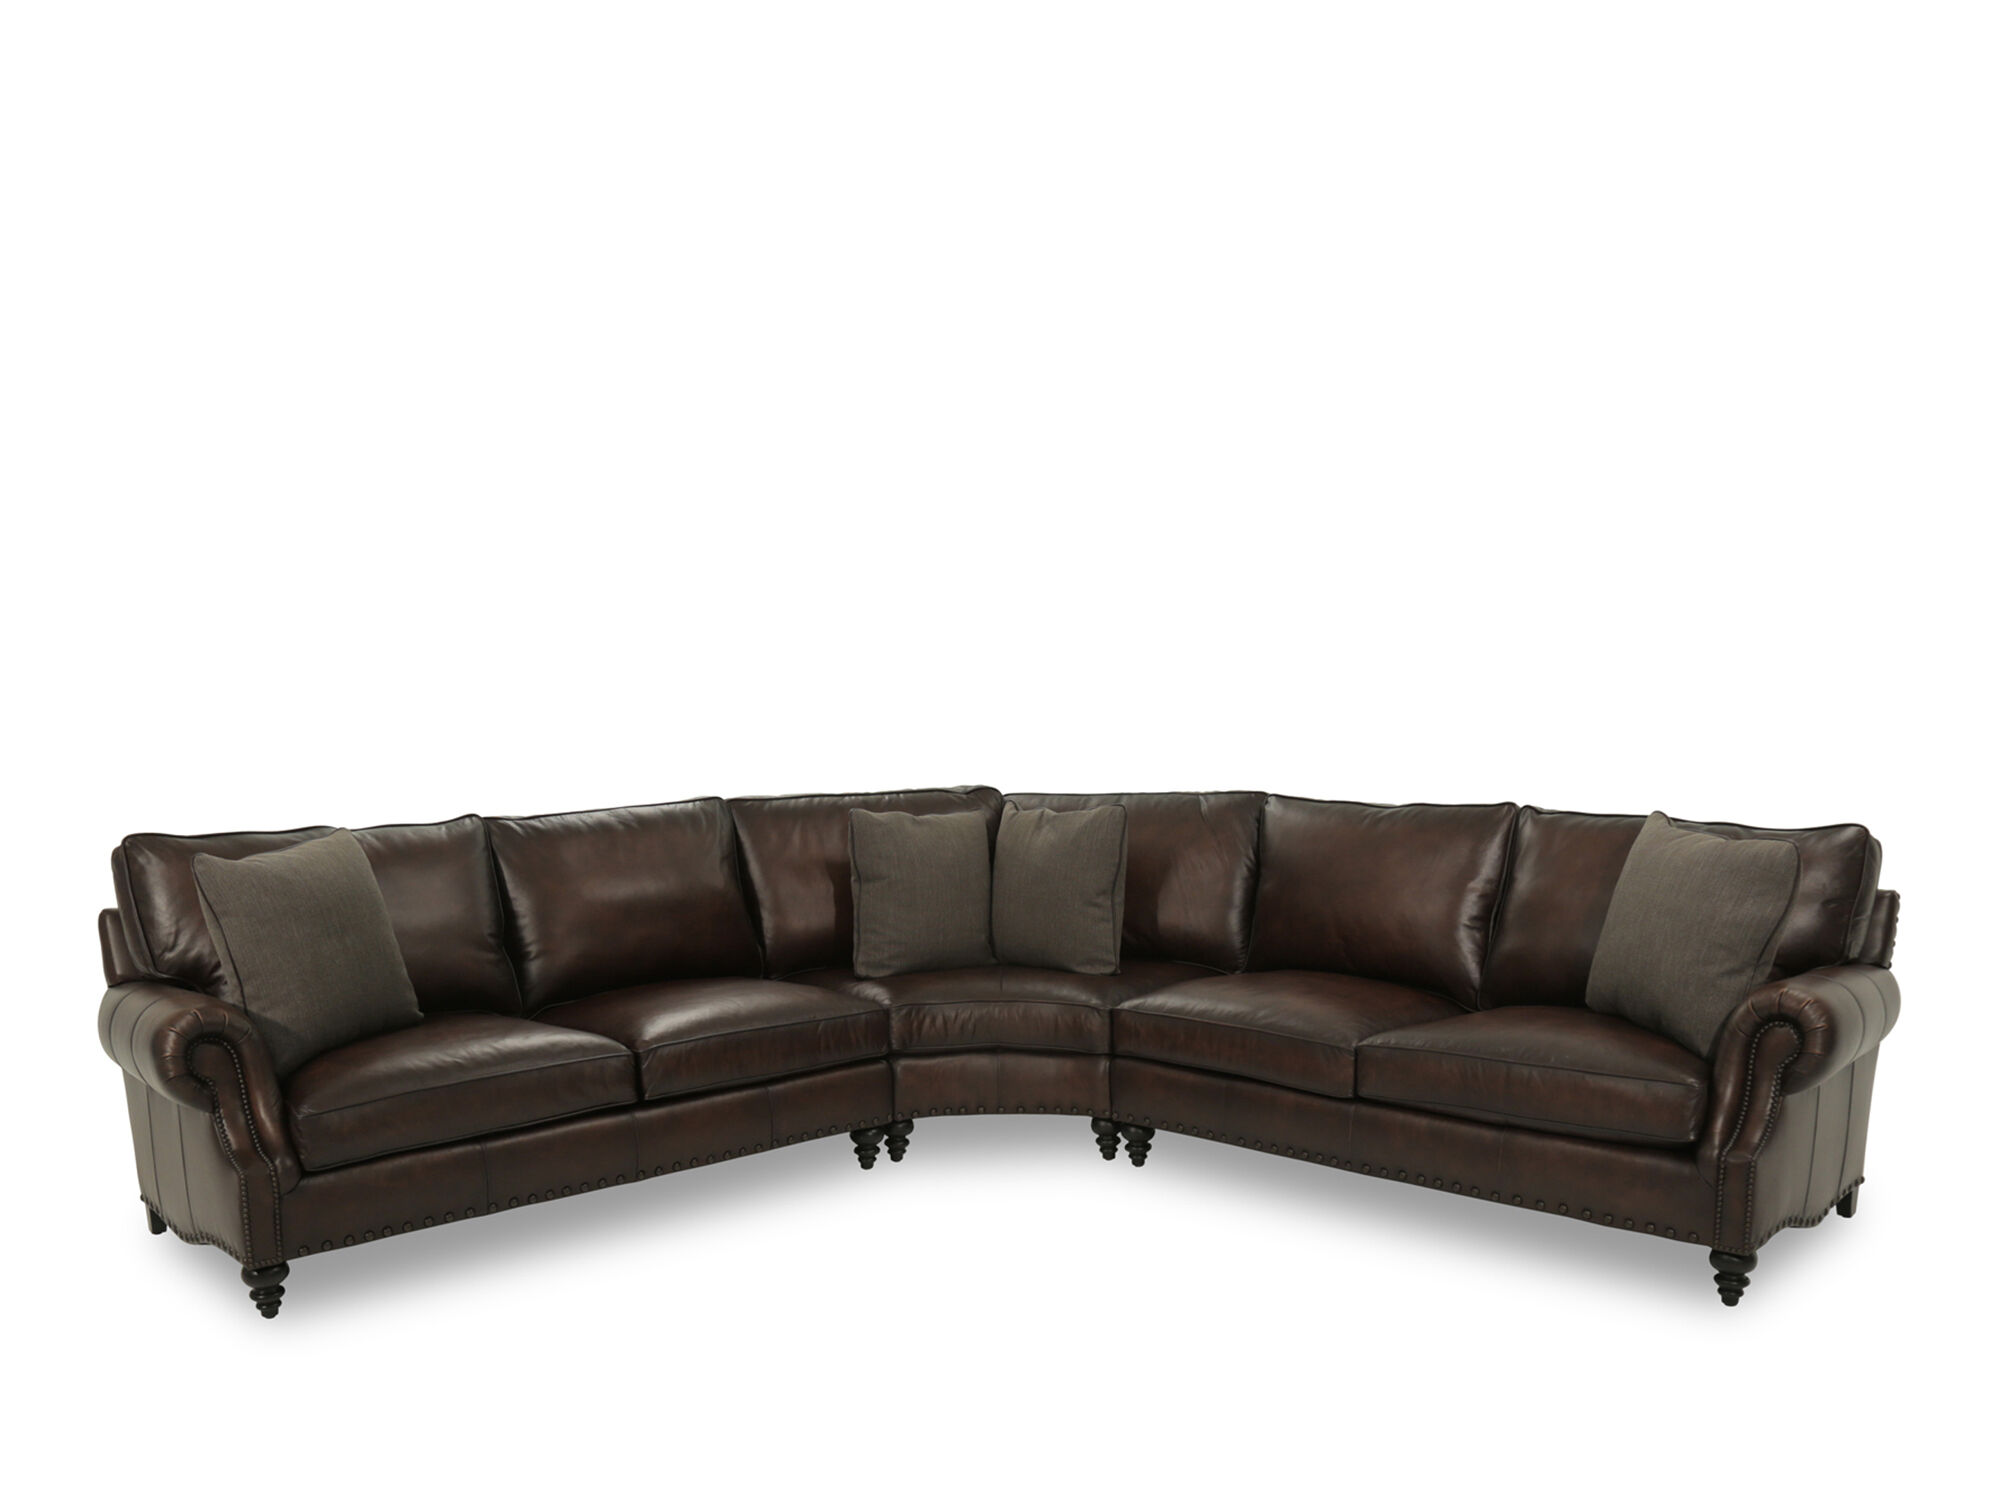 Wonderful Leather 122.5u0026quot; Nailhead Trimmed Sectional In Brown Leather 122.5u0026quot;  Nailhead Trimmed Sectional In Brown